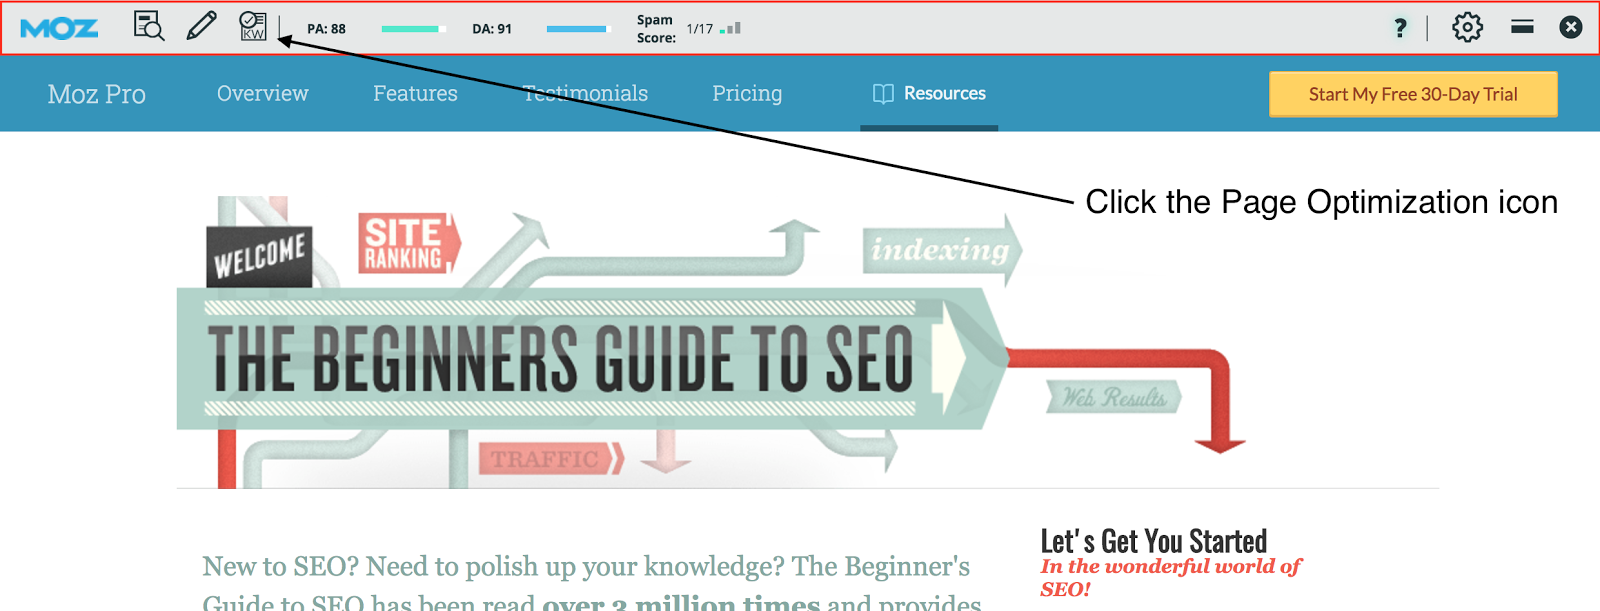 Beginner's Guide To SEO Mozbar.png